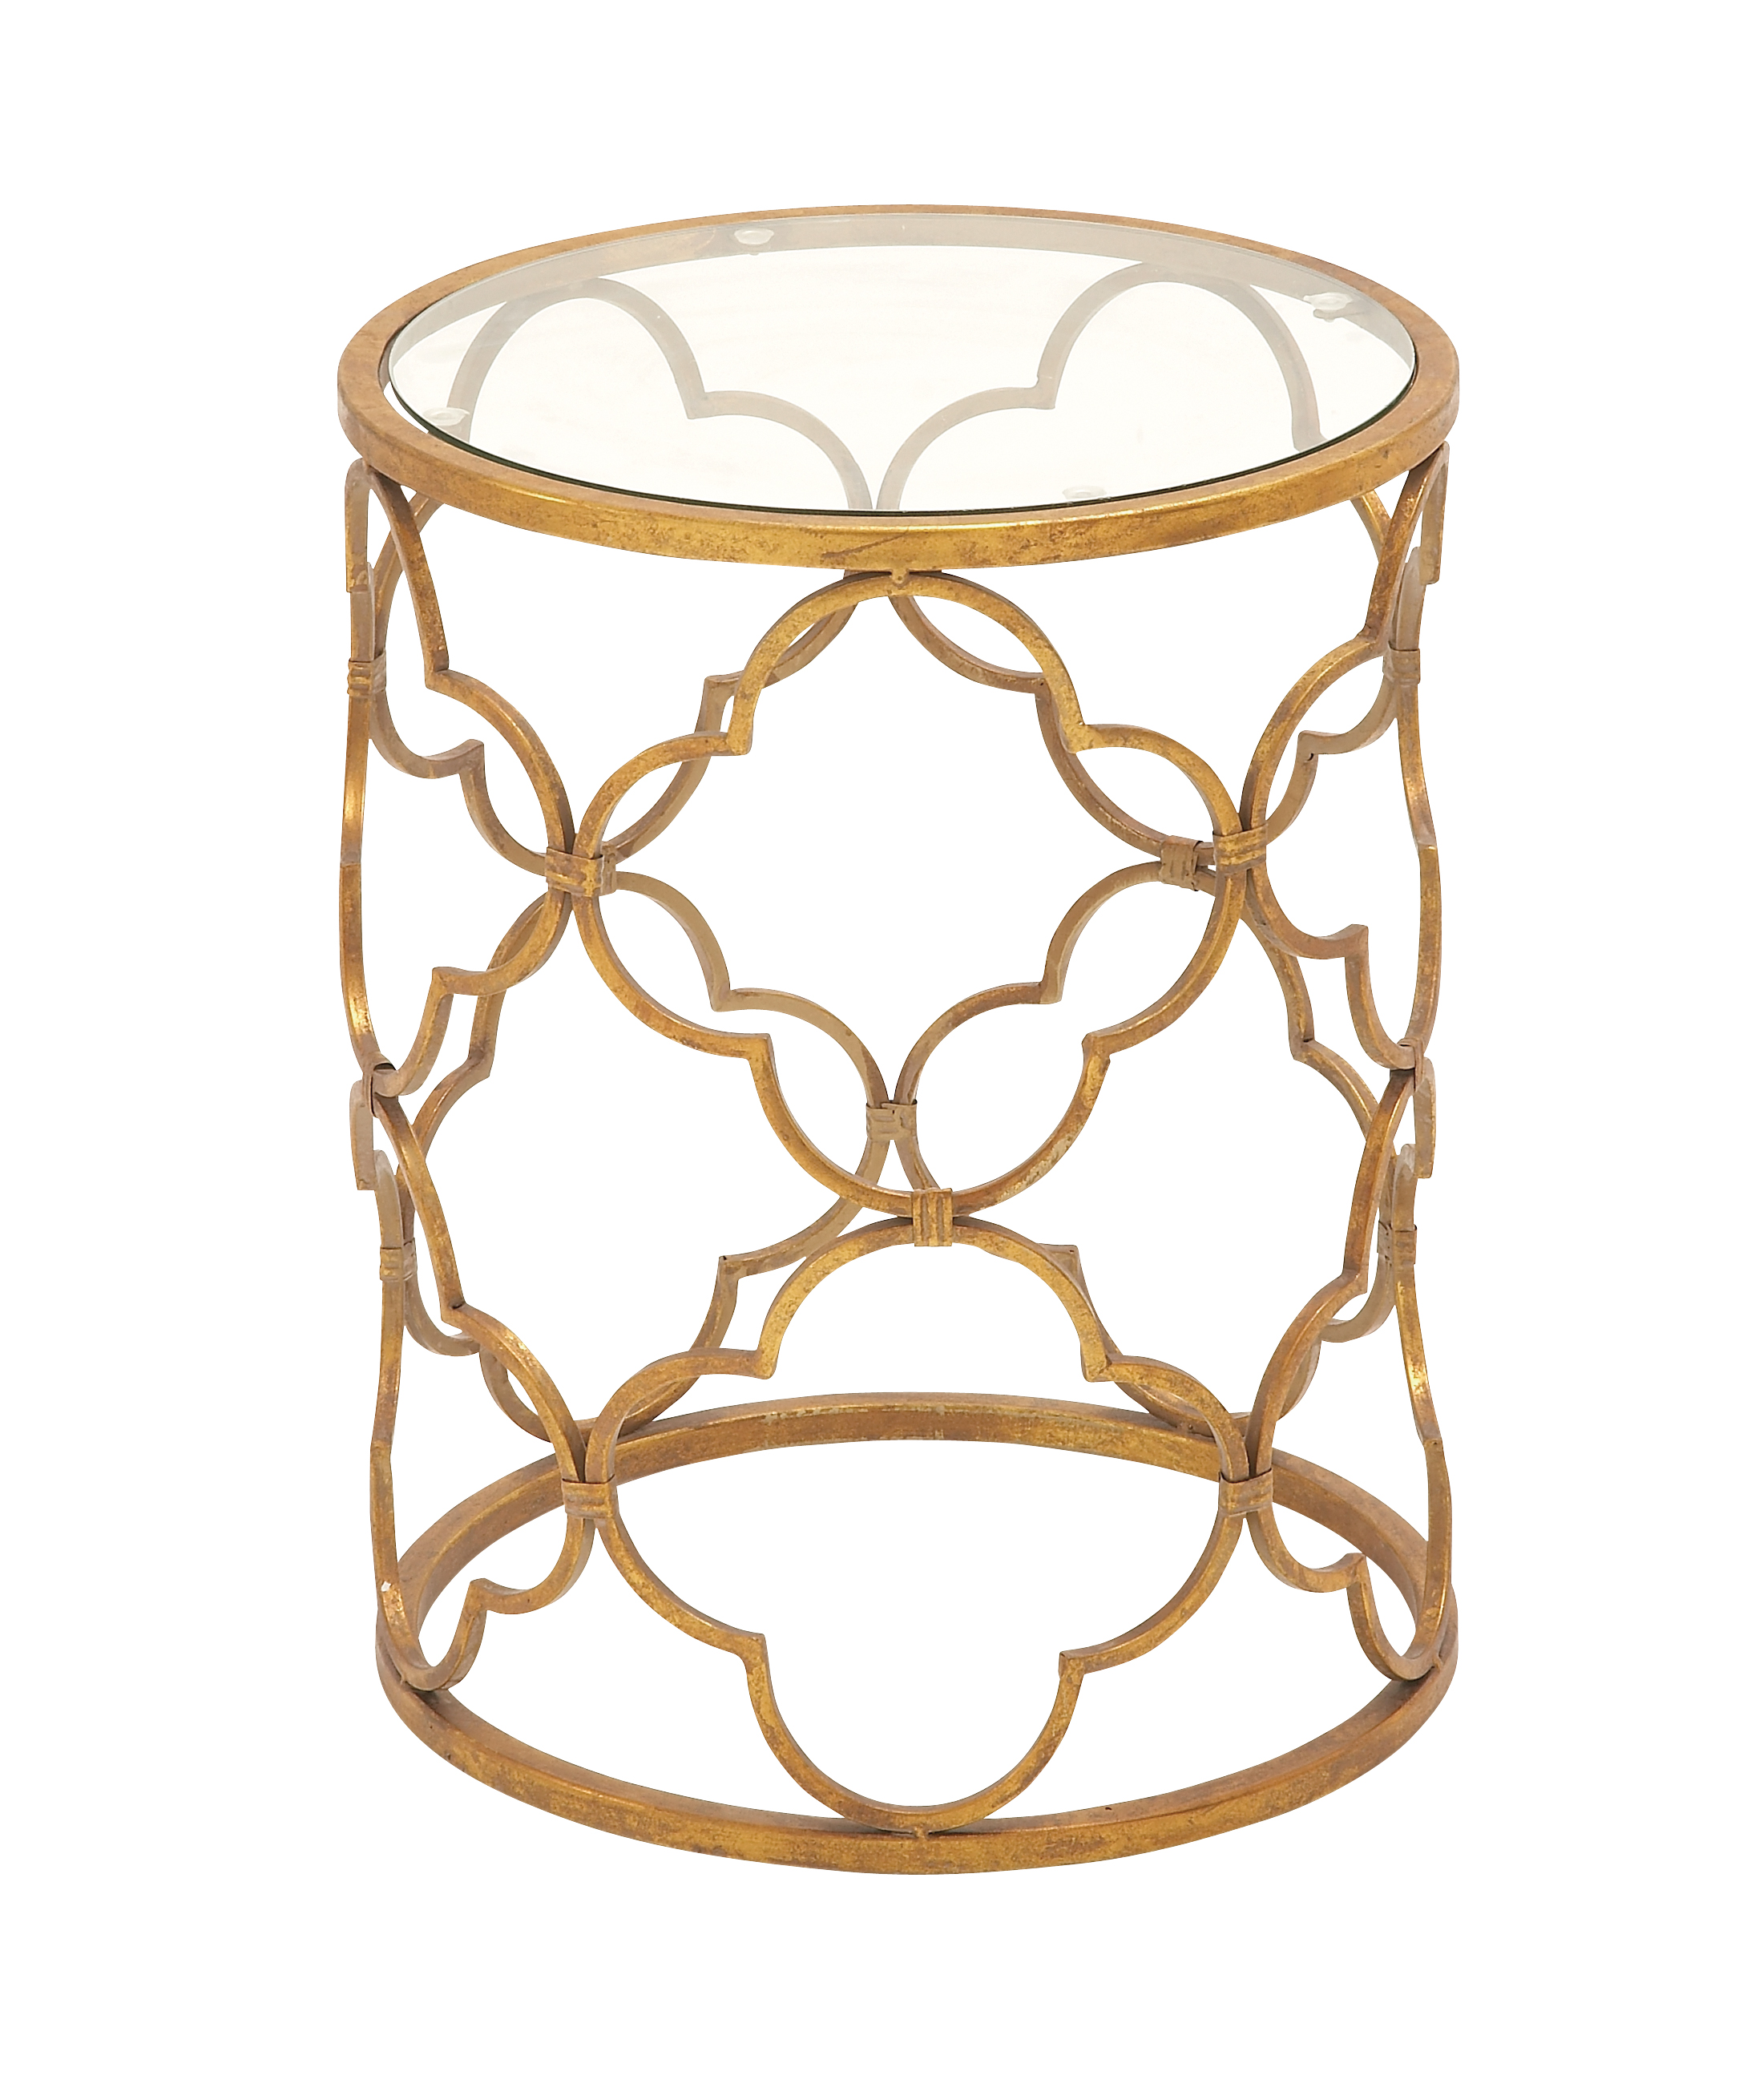 Decmode 20 Inch Cylindrical Golden Metal and Glass Accent Table, Gold brass by DecMode